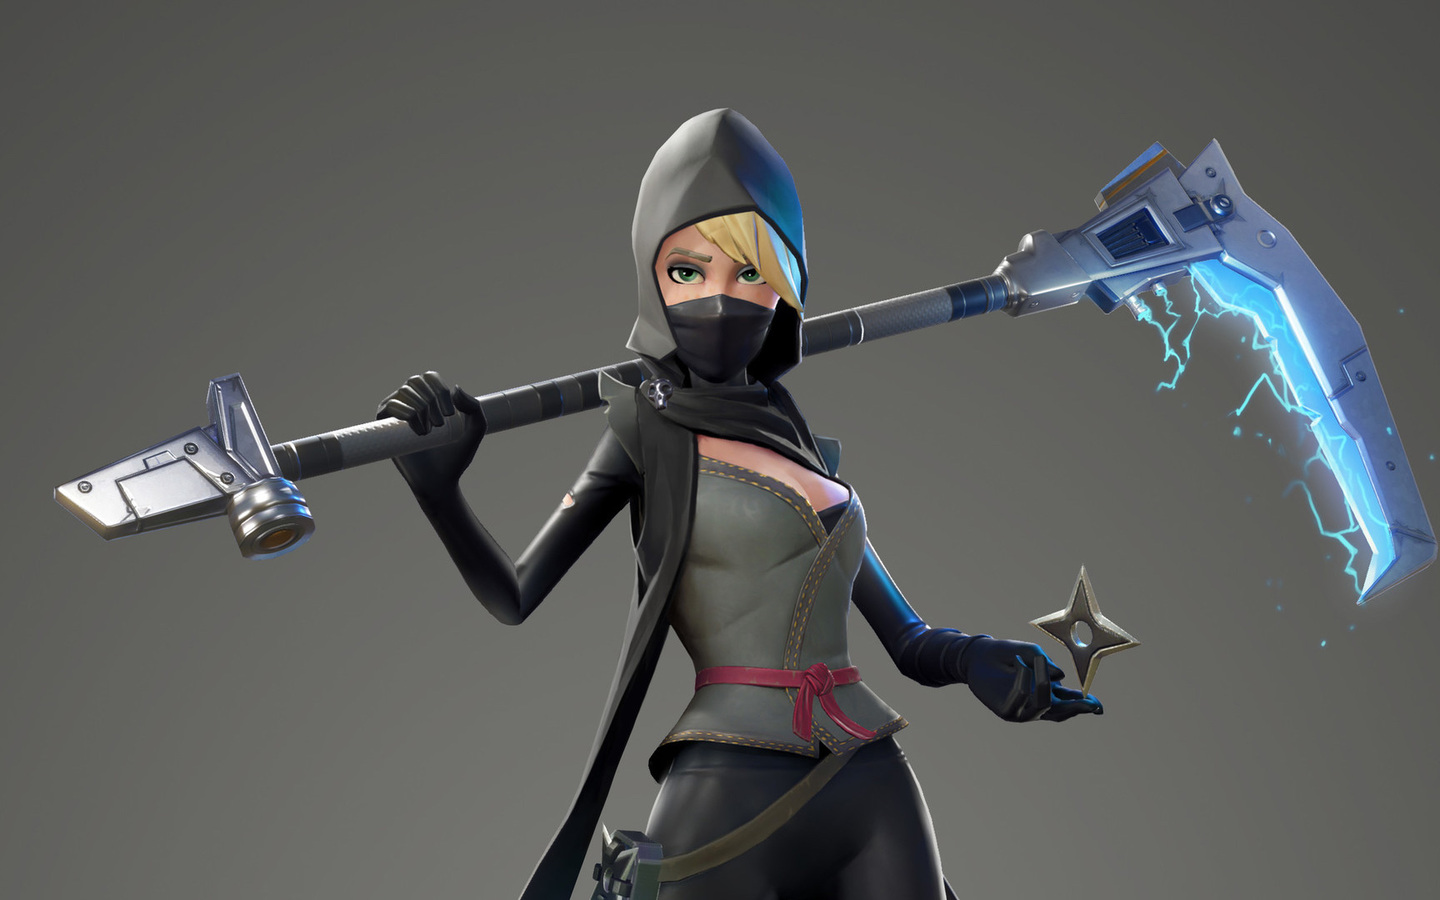 fortnite wallpaper 1440x900: 1440x900 Fortnite Female Ninja 1440x900 Resolution HD 4k